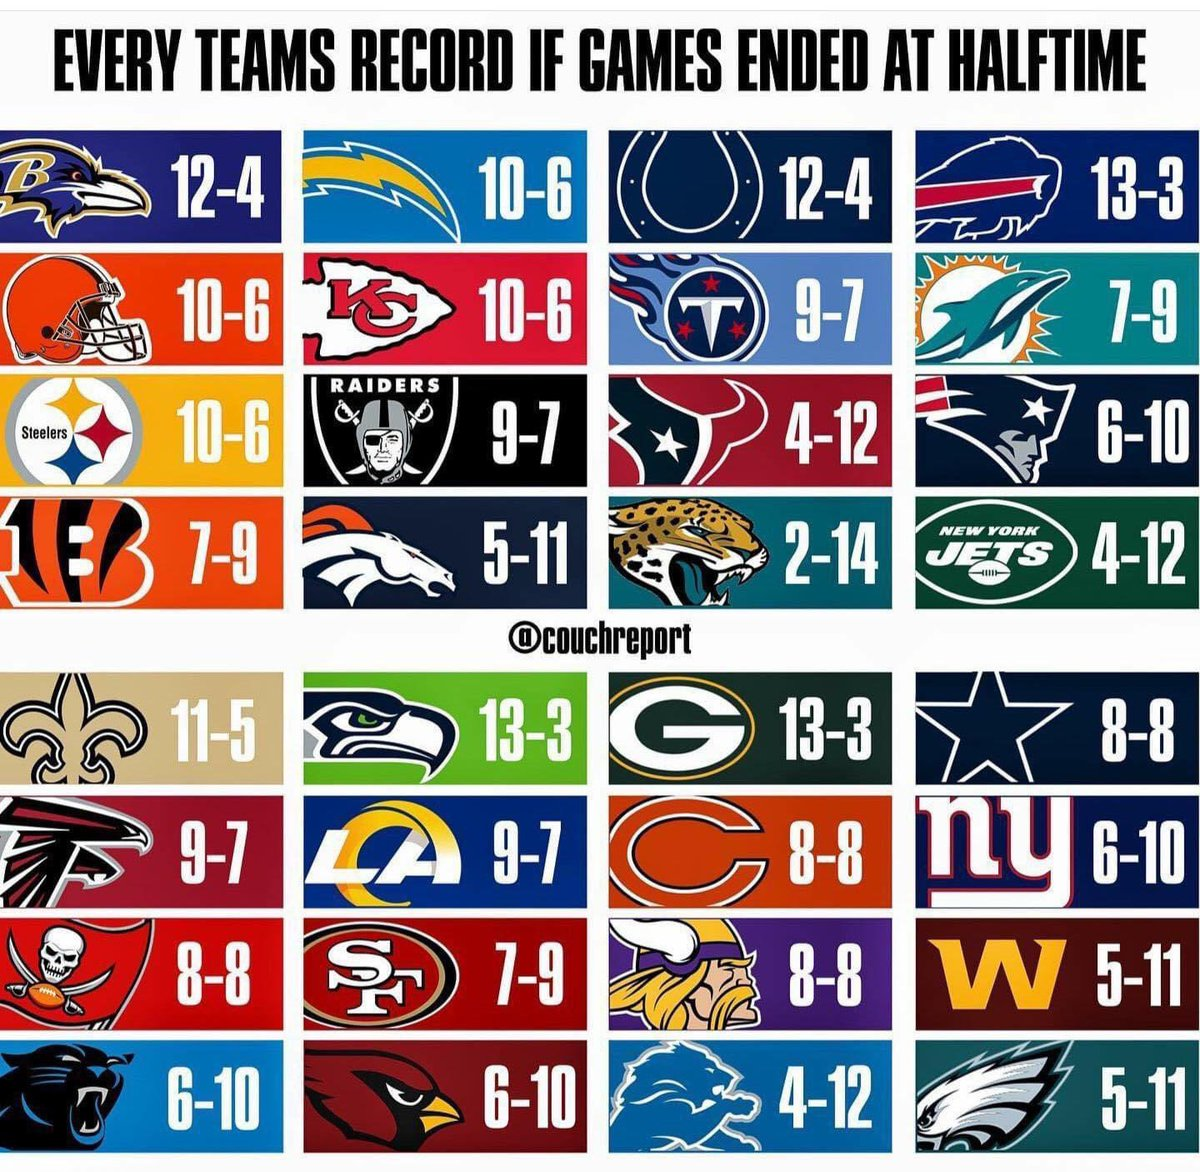 Has anybody seen this? Not much has changed for my Lions. #OnePride ❤️